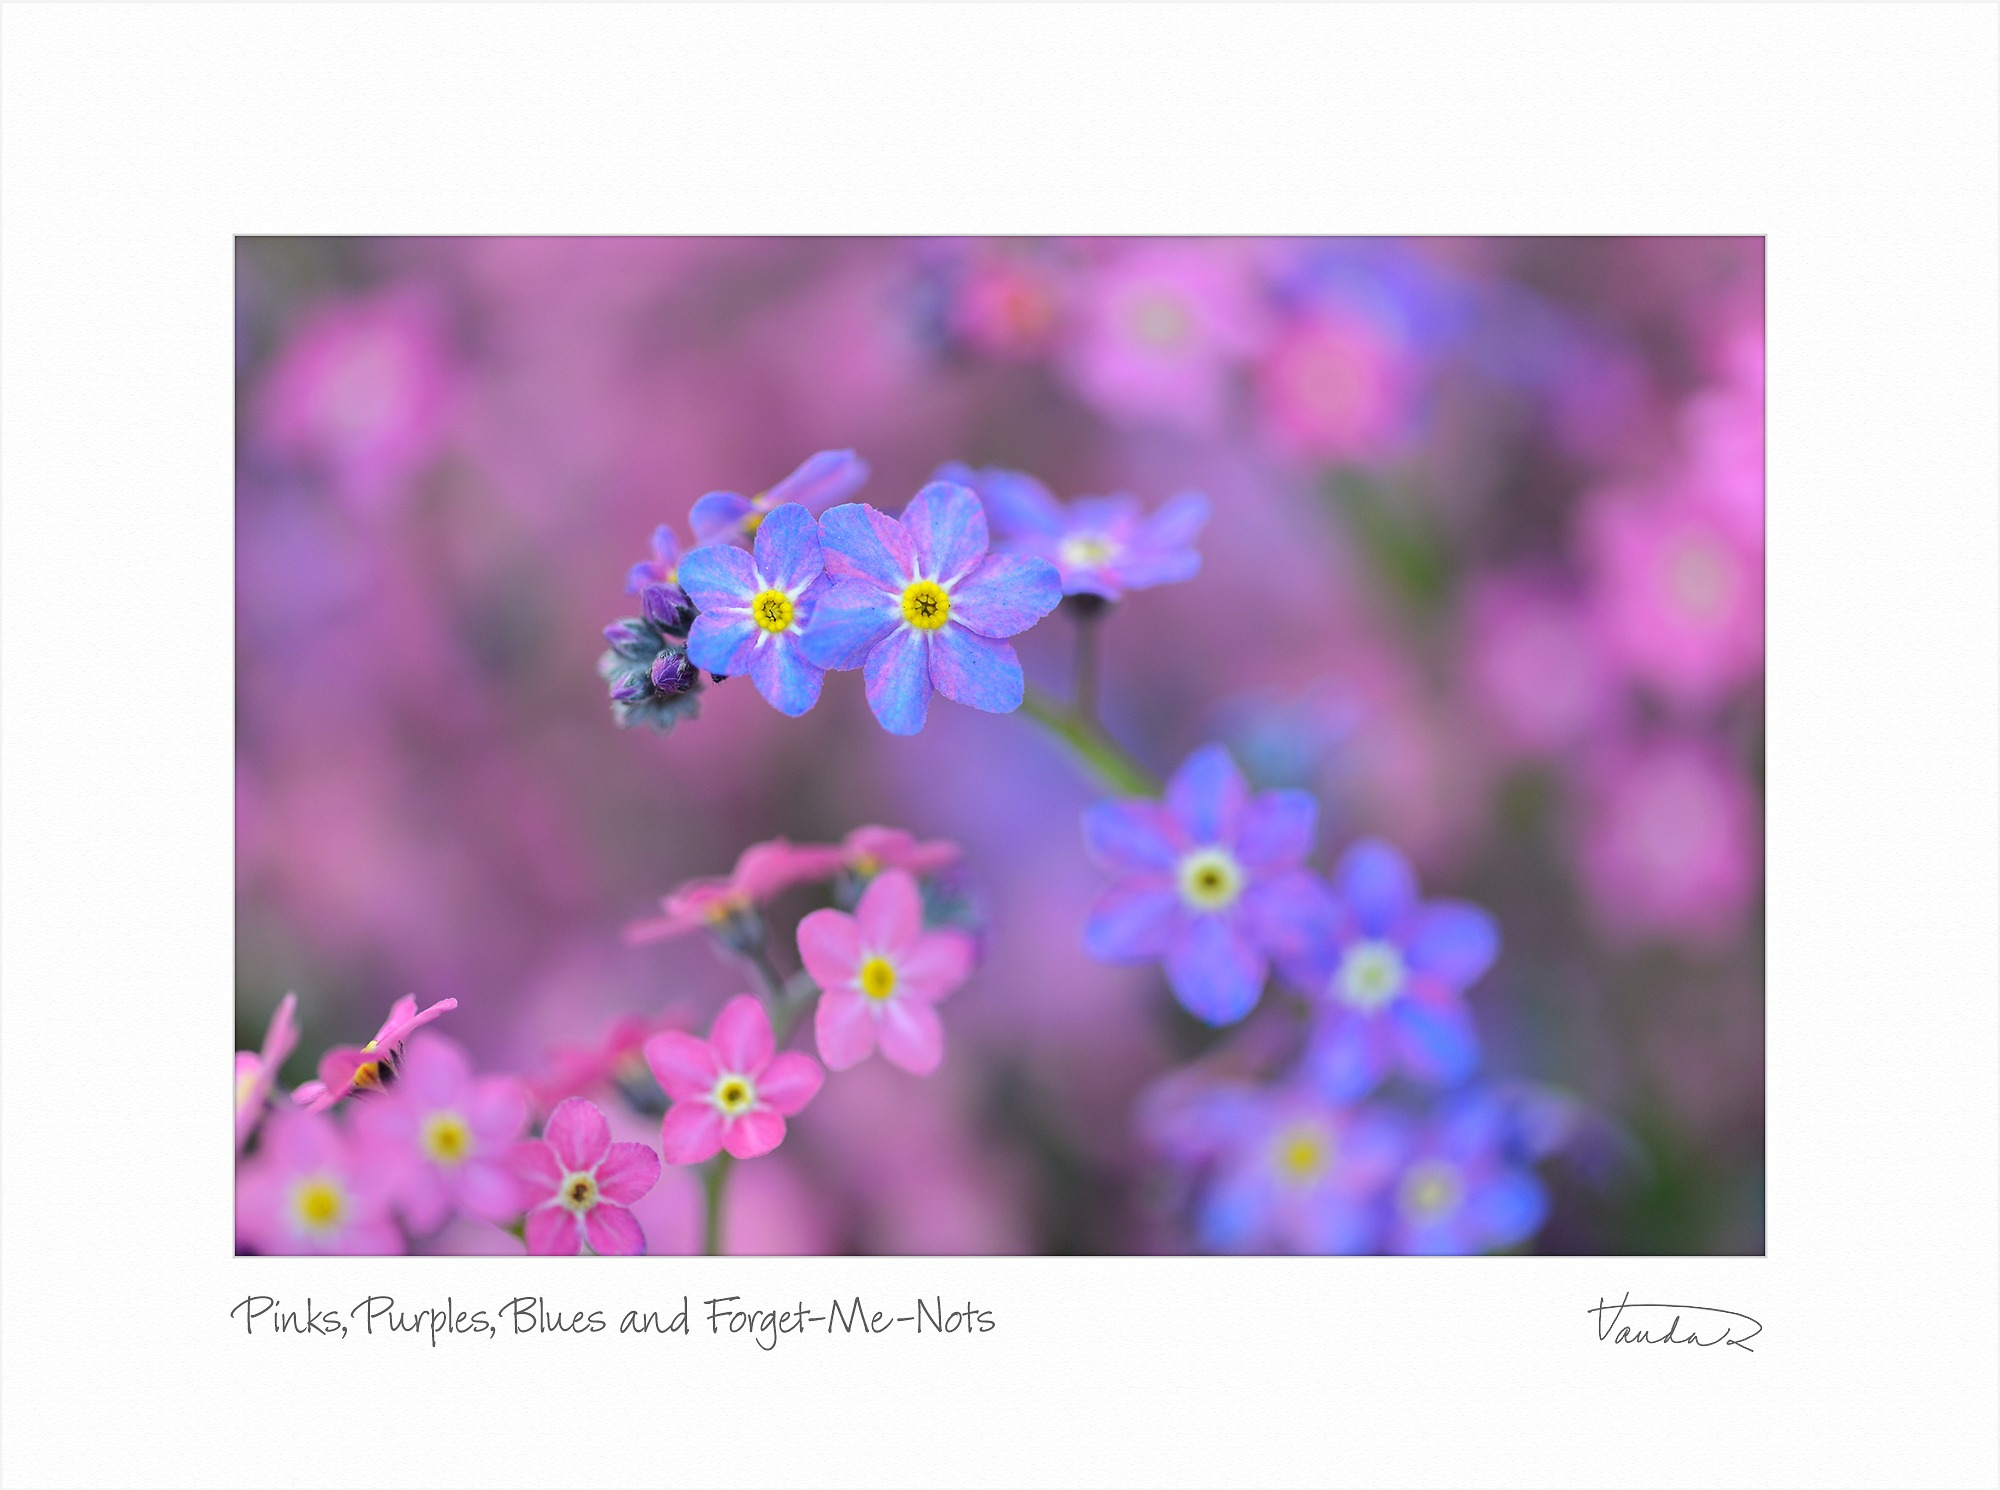 Pinks, Purples, Blues and Forget-Me-Nots